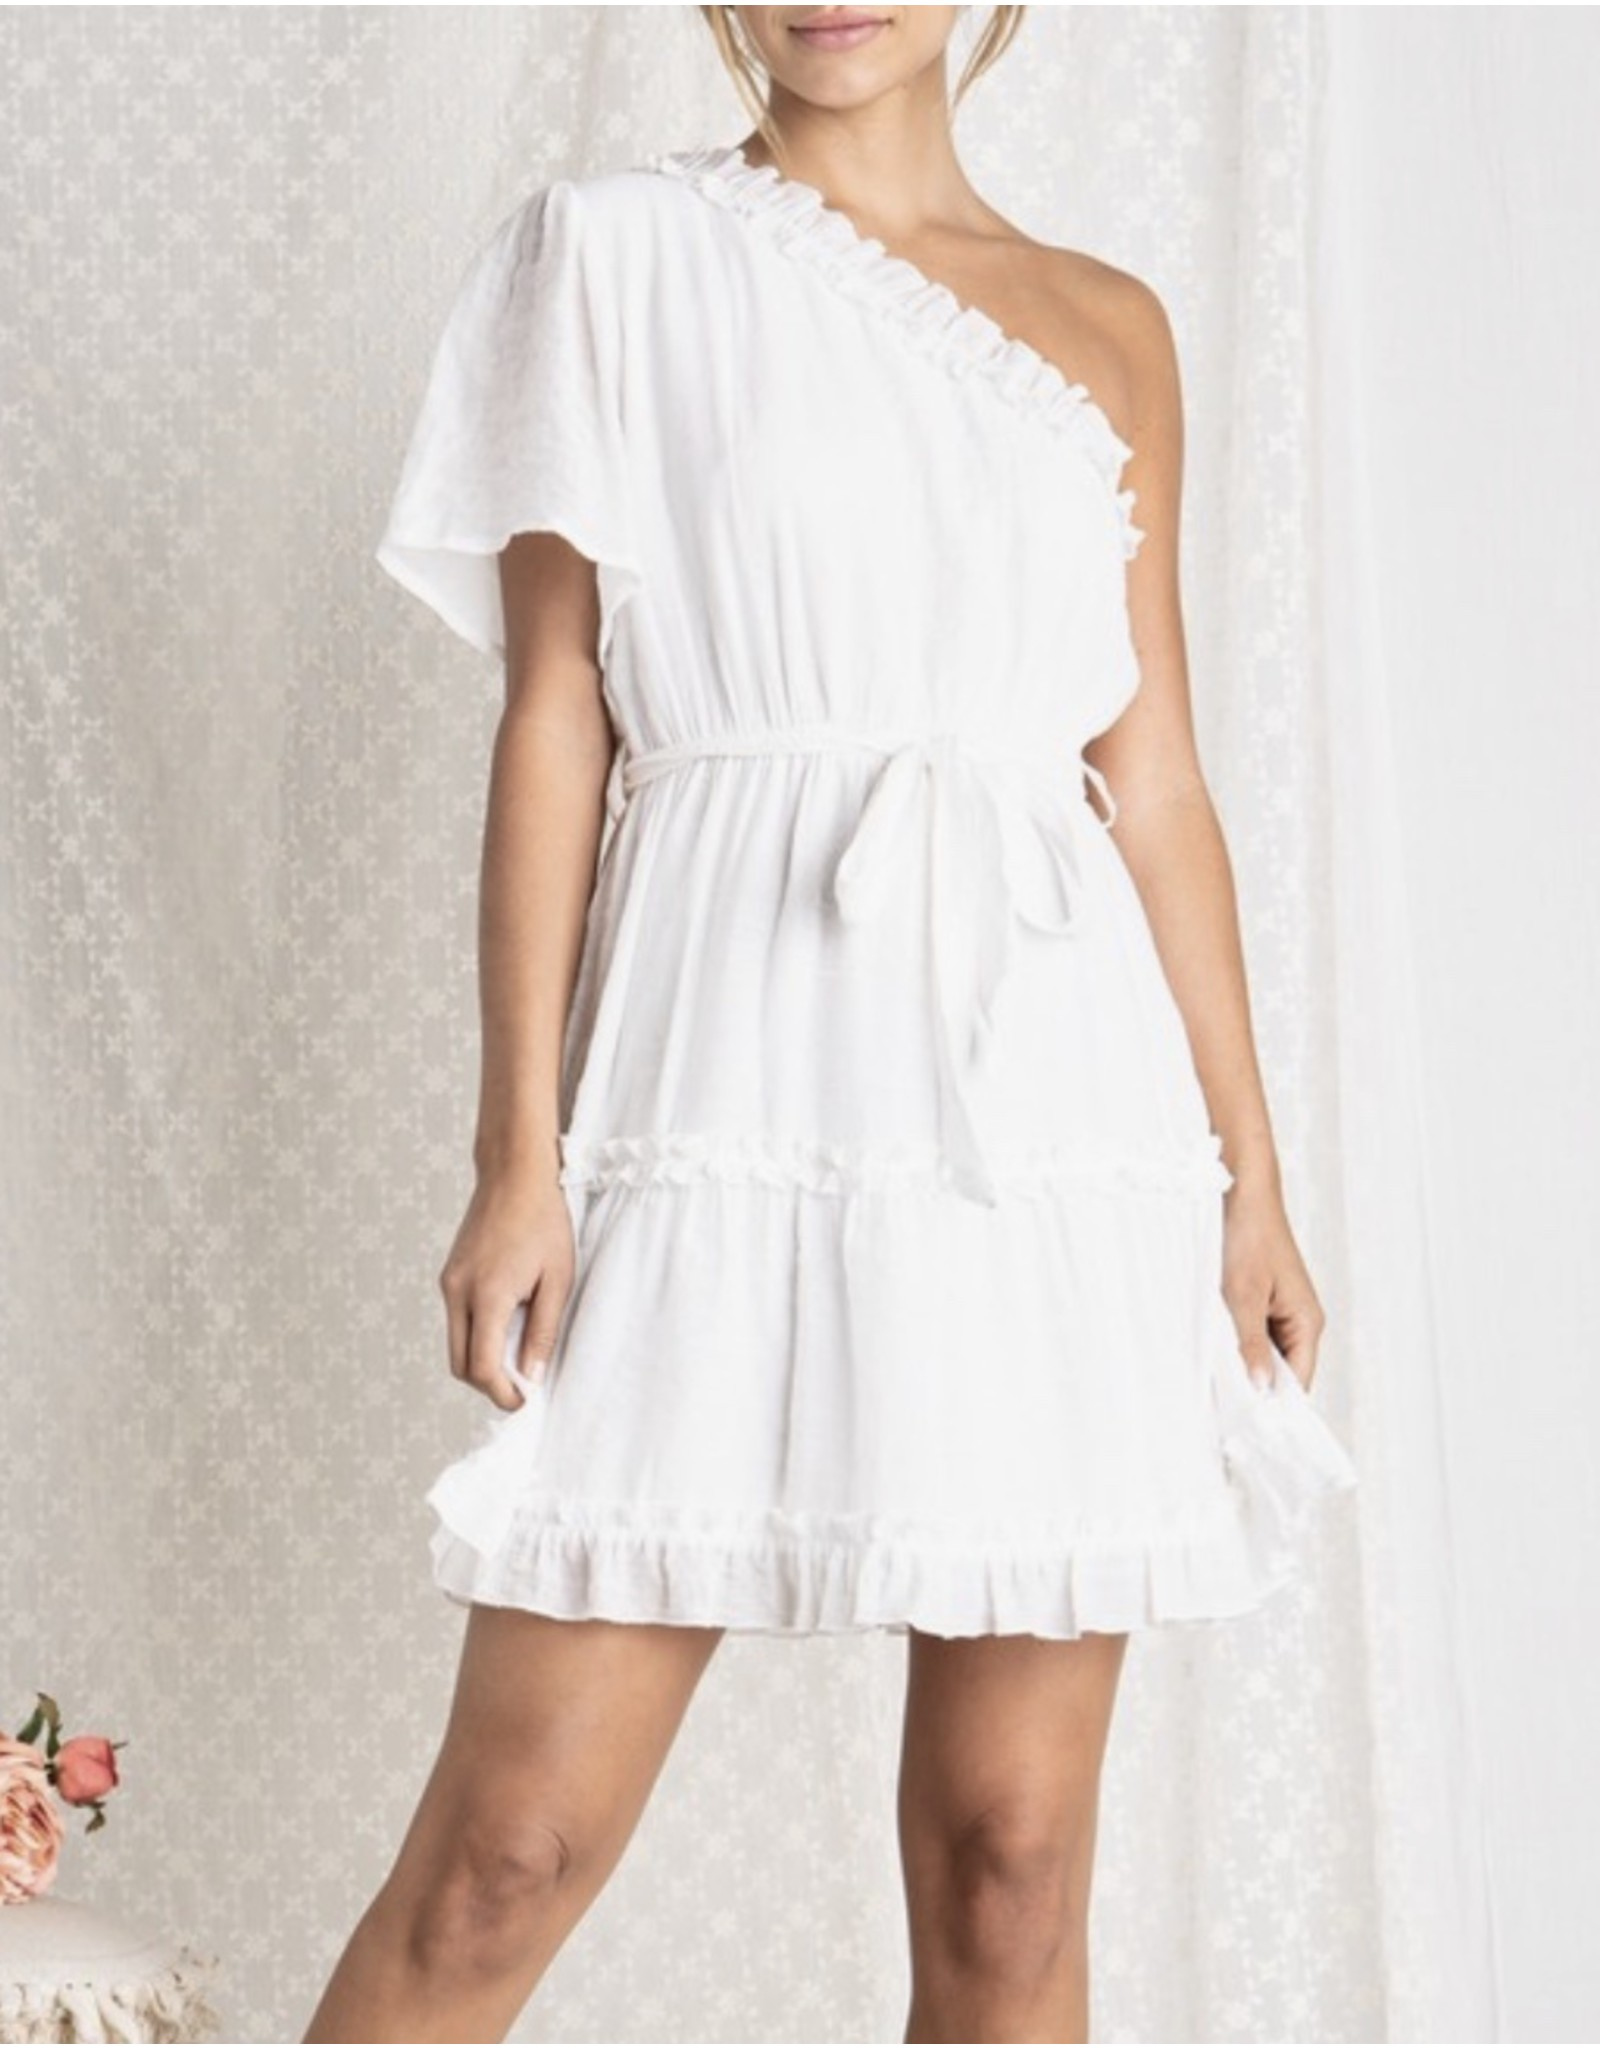 Beavely  One Shoulder Ruffle Dress - White